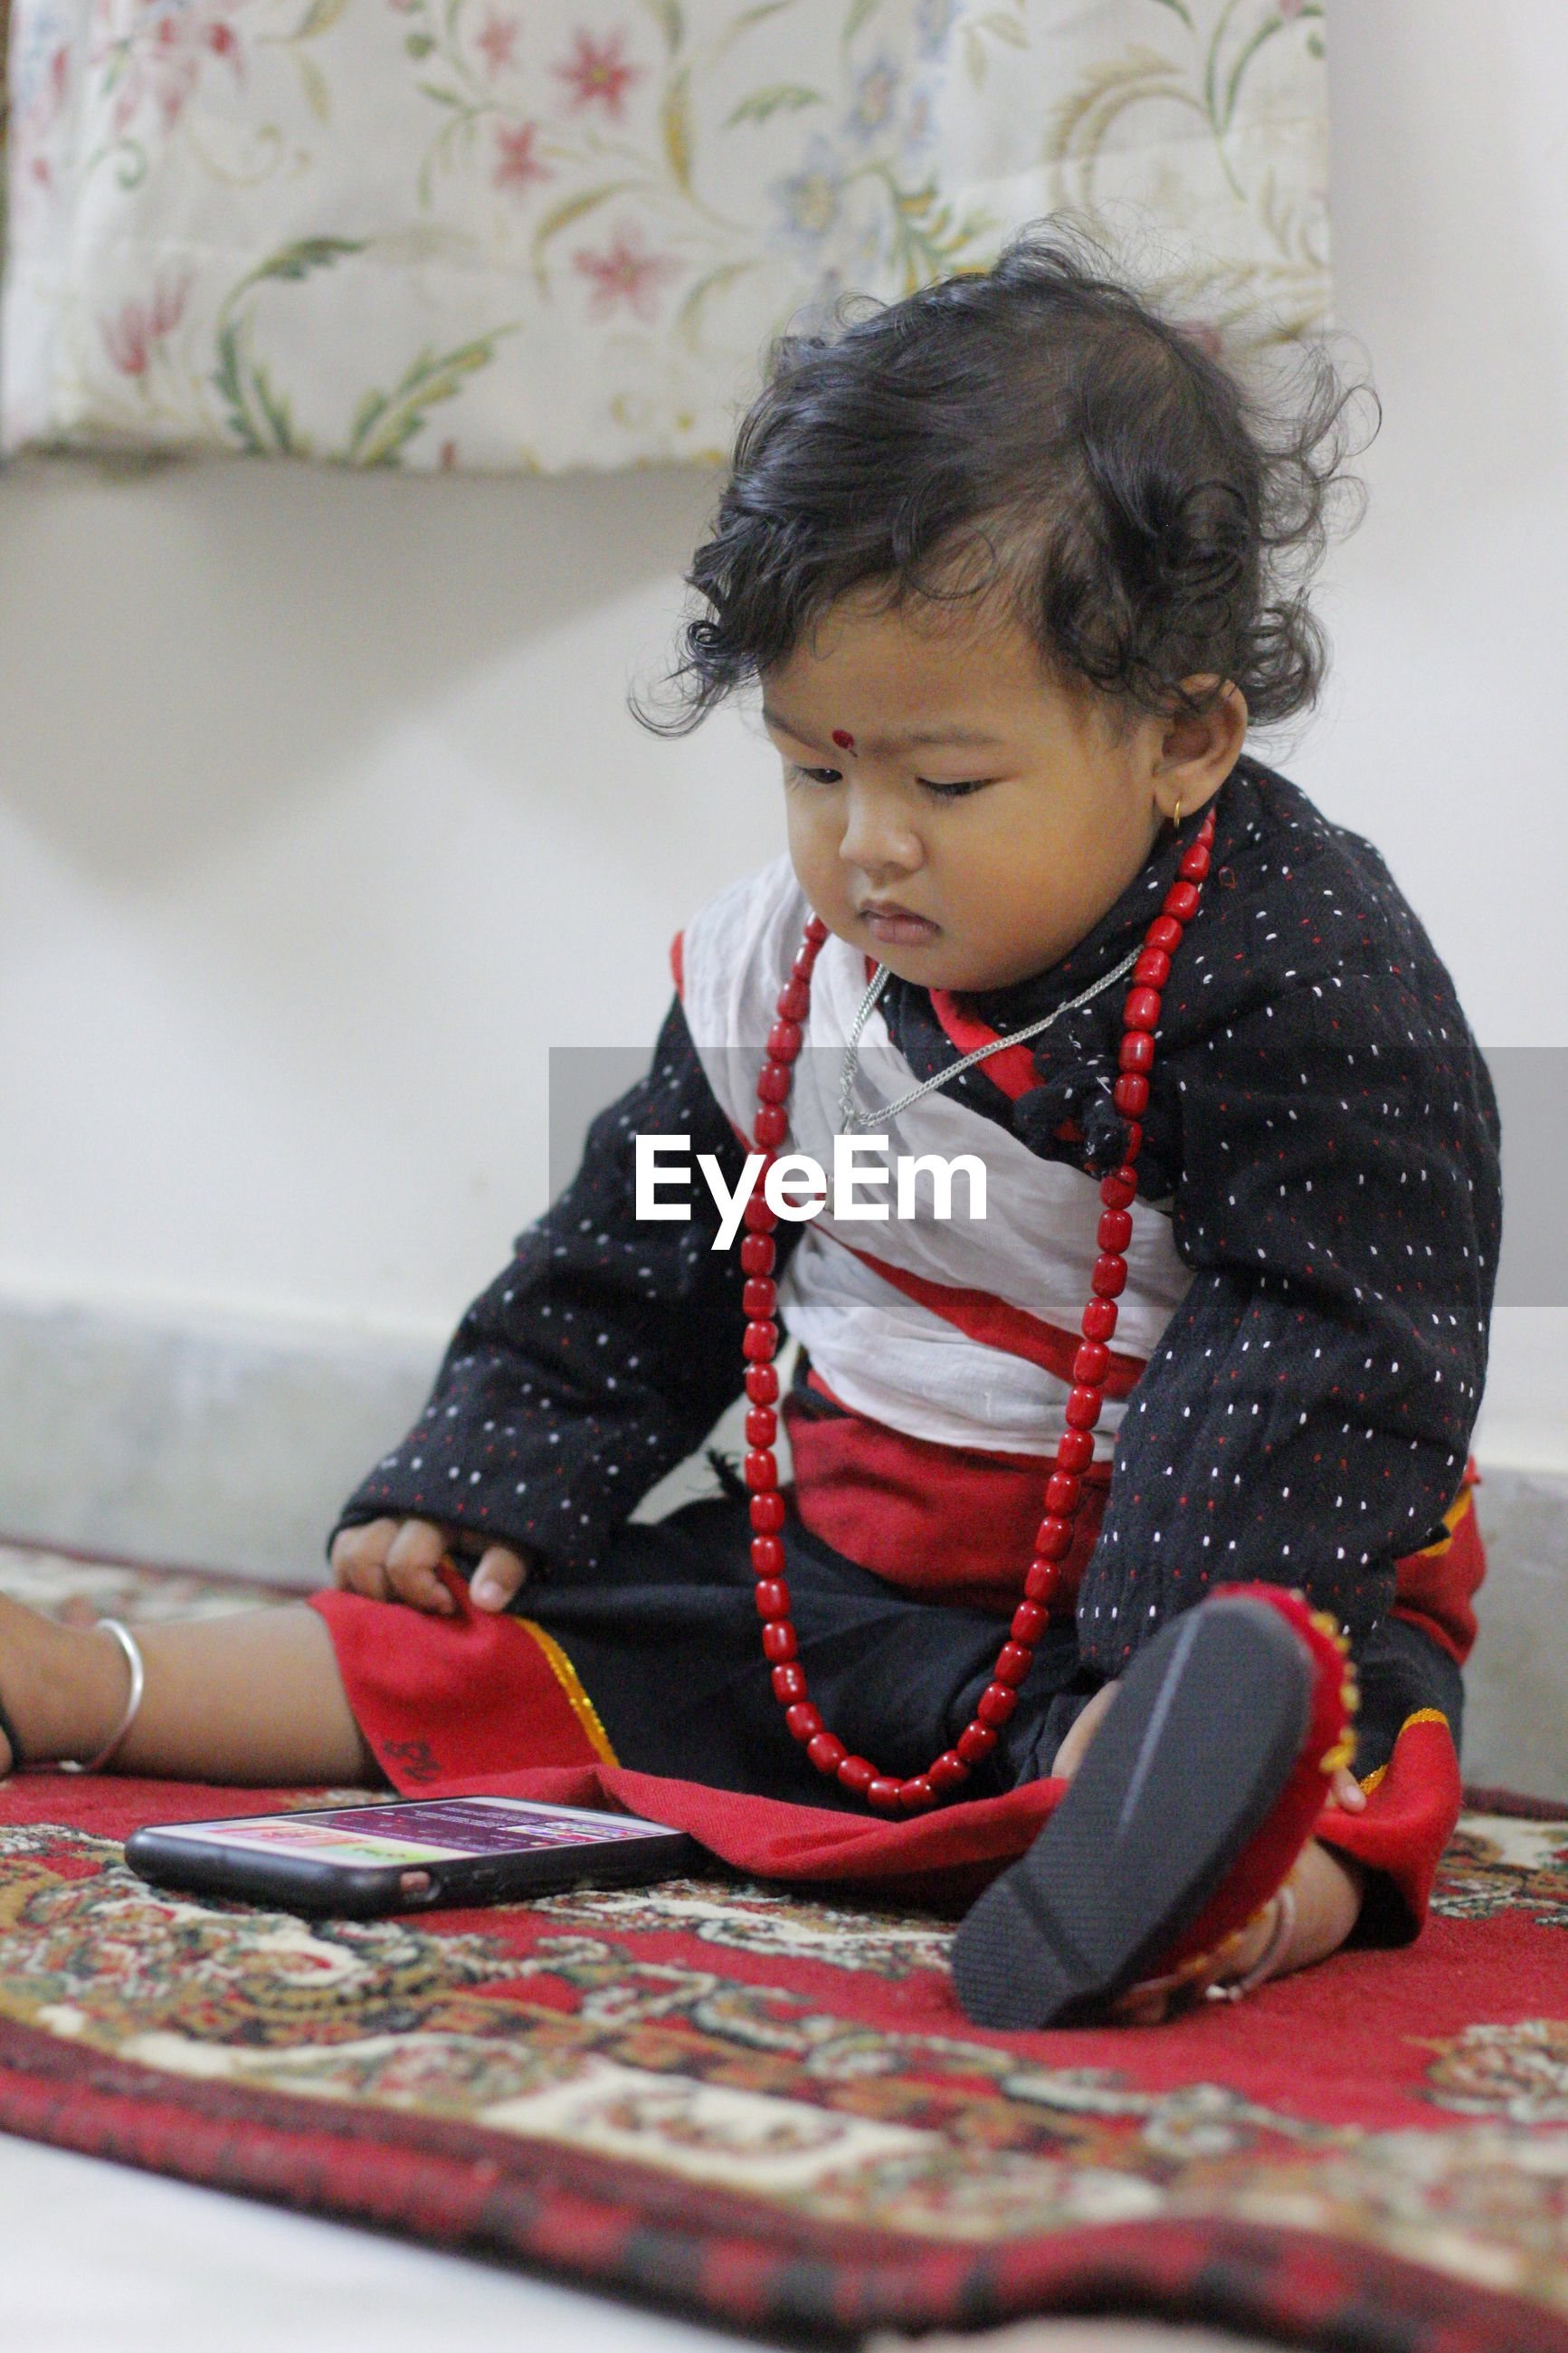 Cute girl sitting and watching mobile phone at home